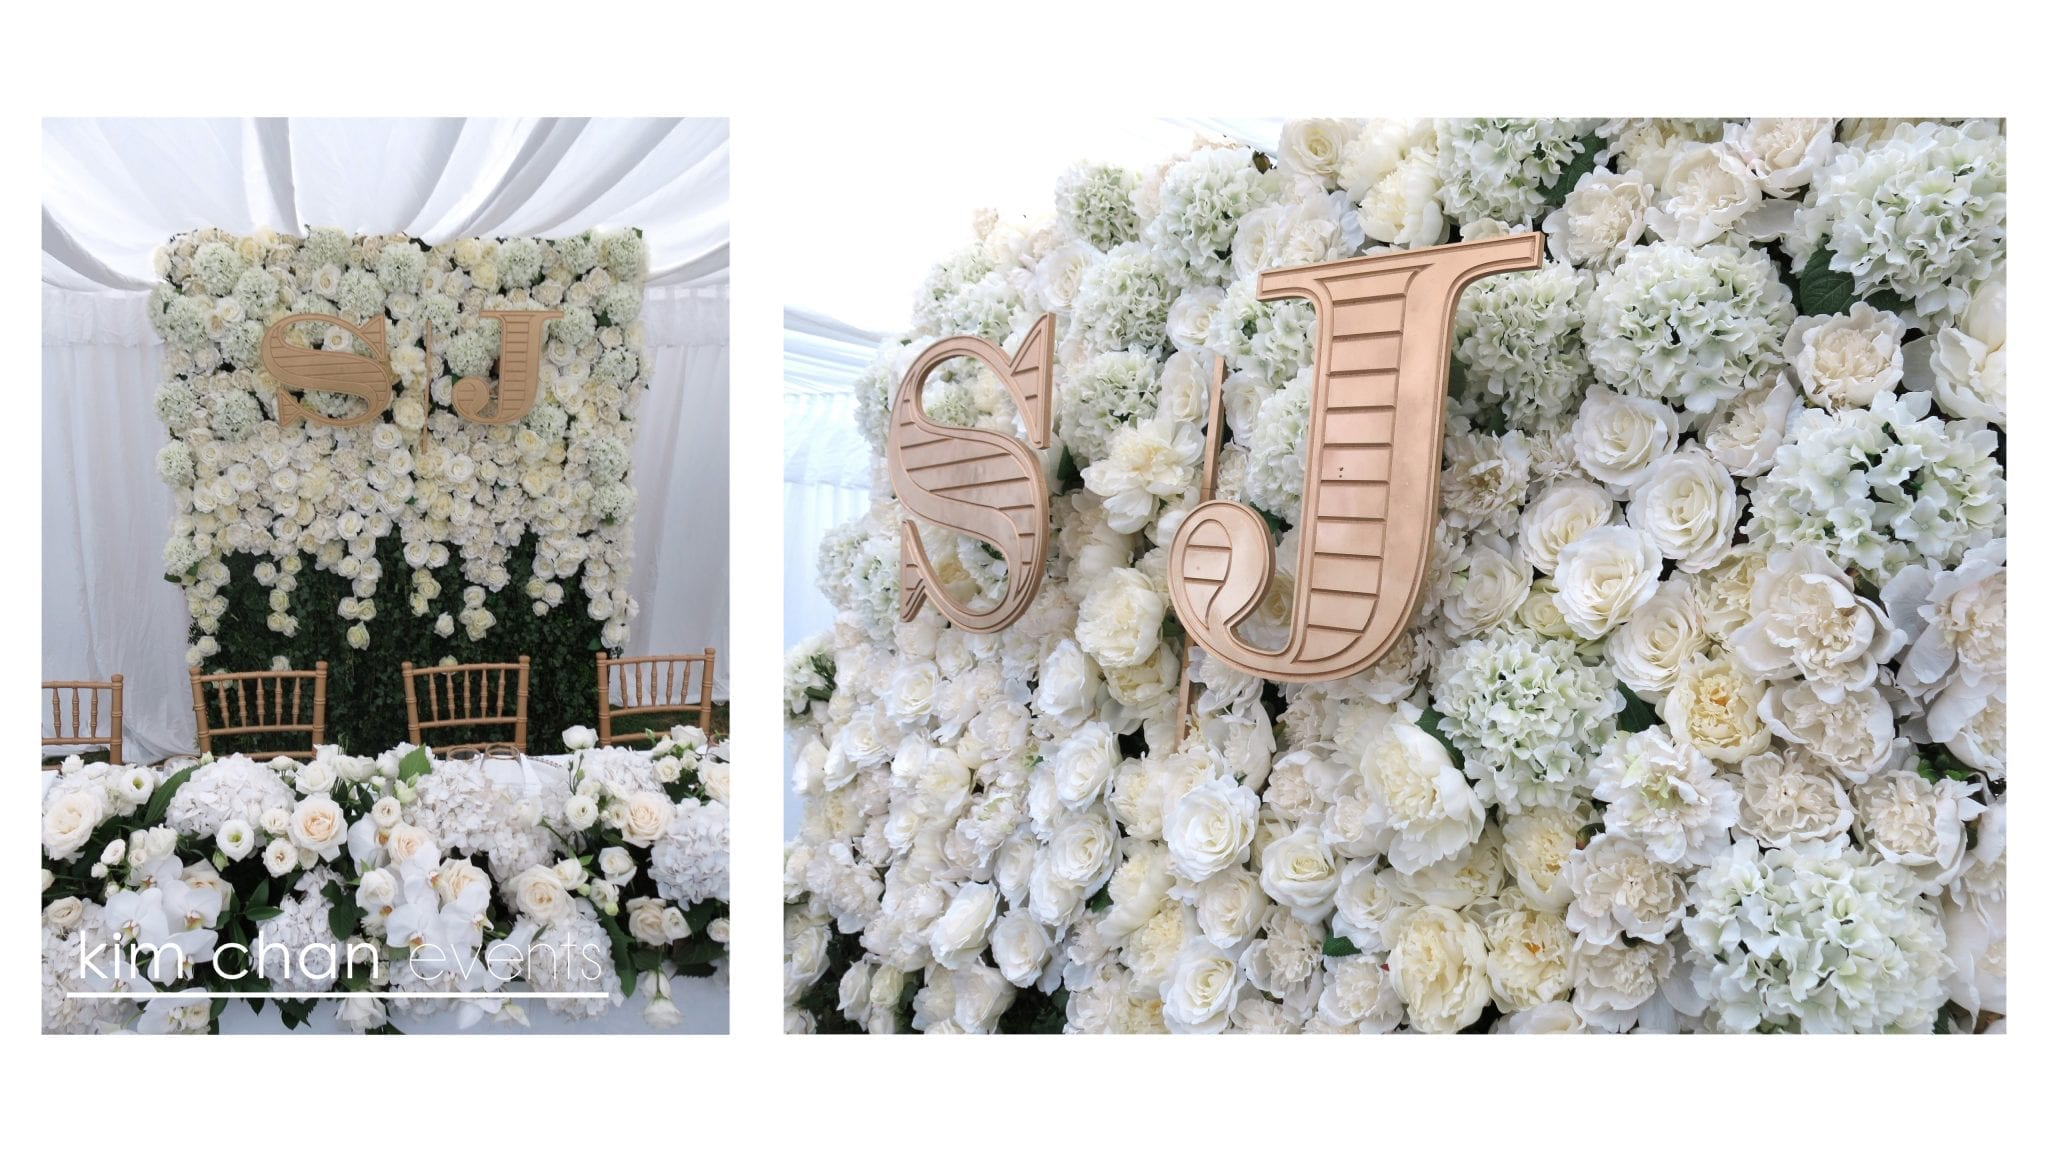 kimchanevents|flower wall in white and gold with bride and groom initials